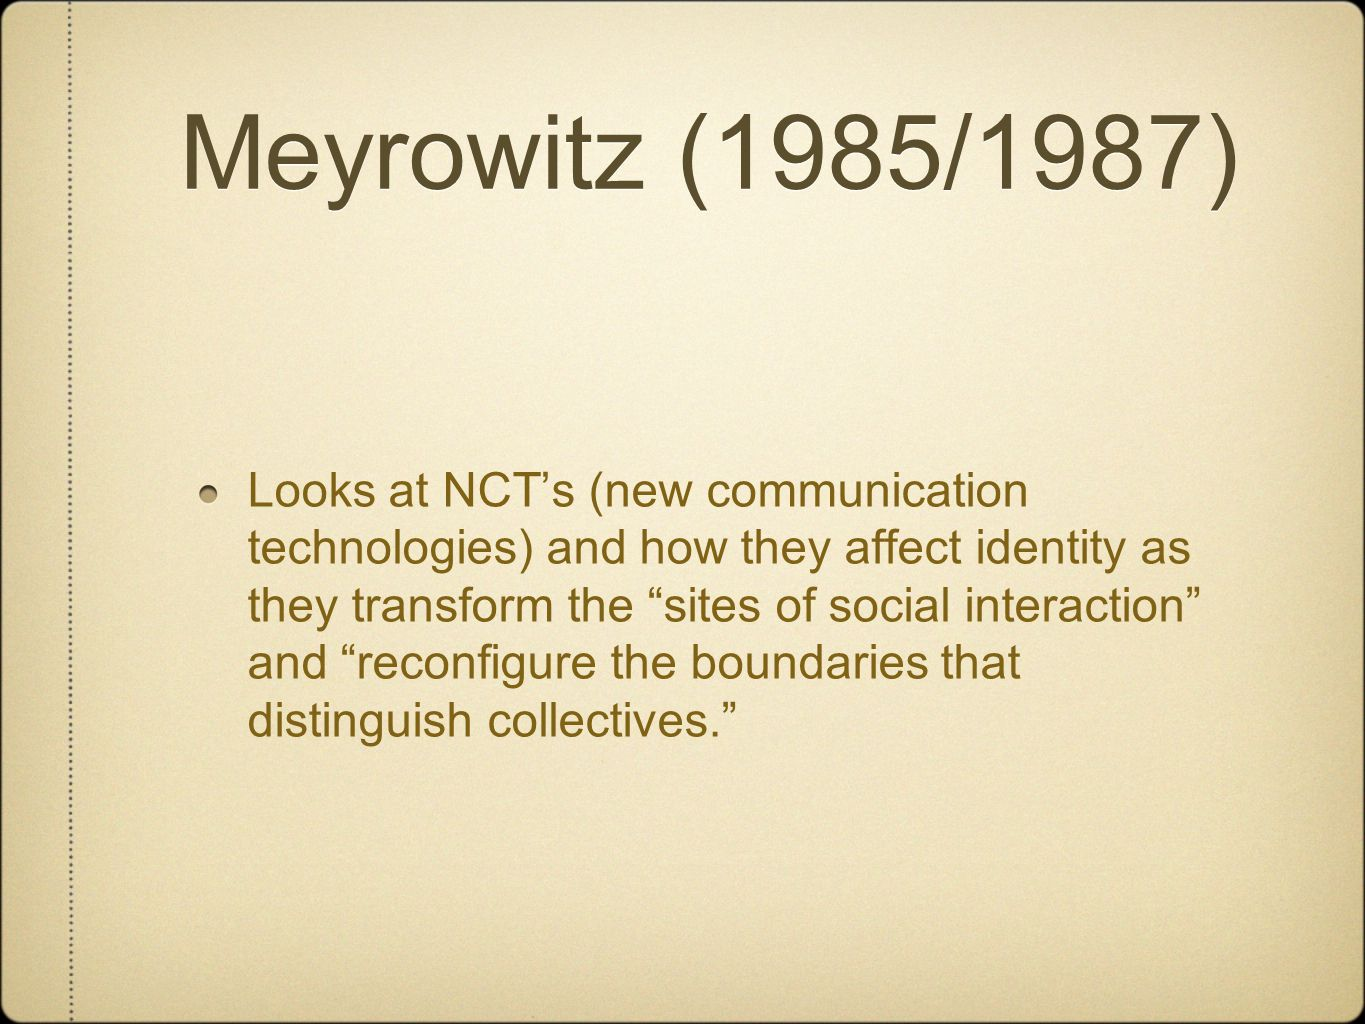 Reeves & Nass, 1996 Approach NCT's as objects relevant to identity building.